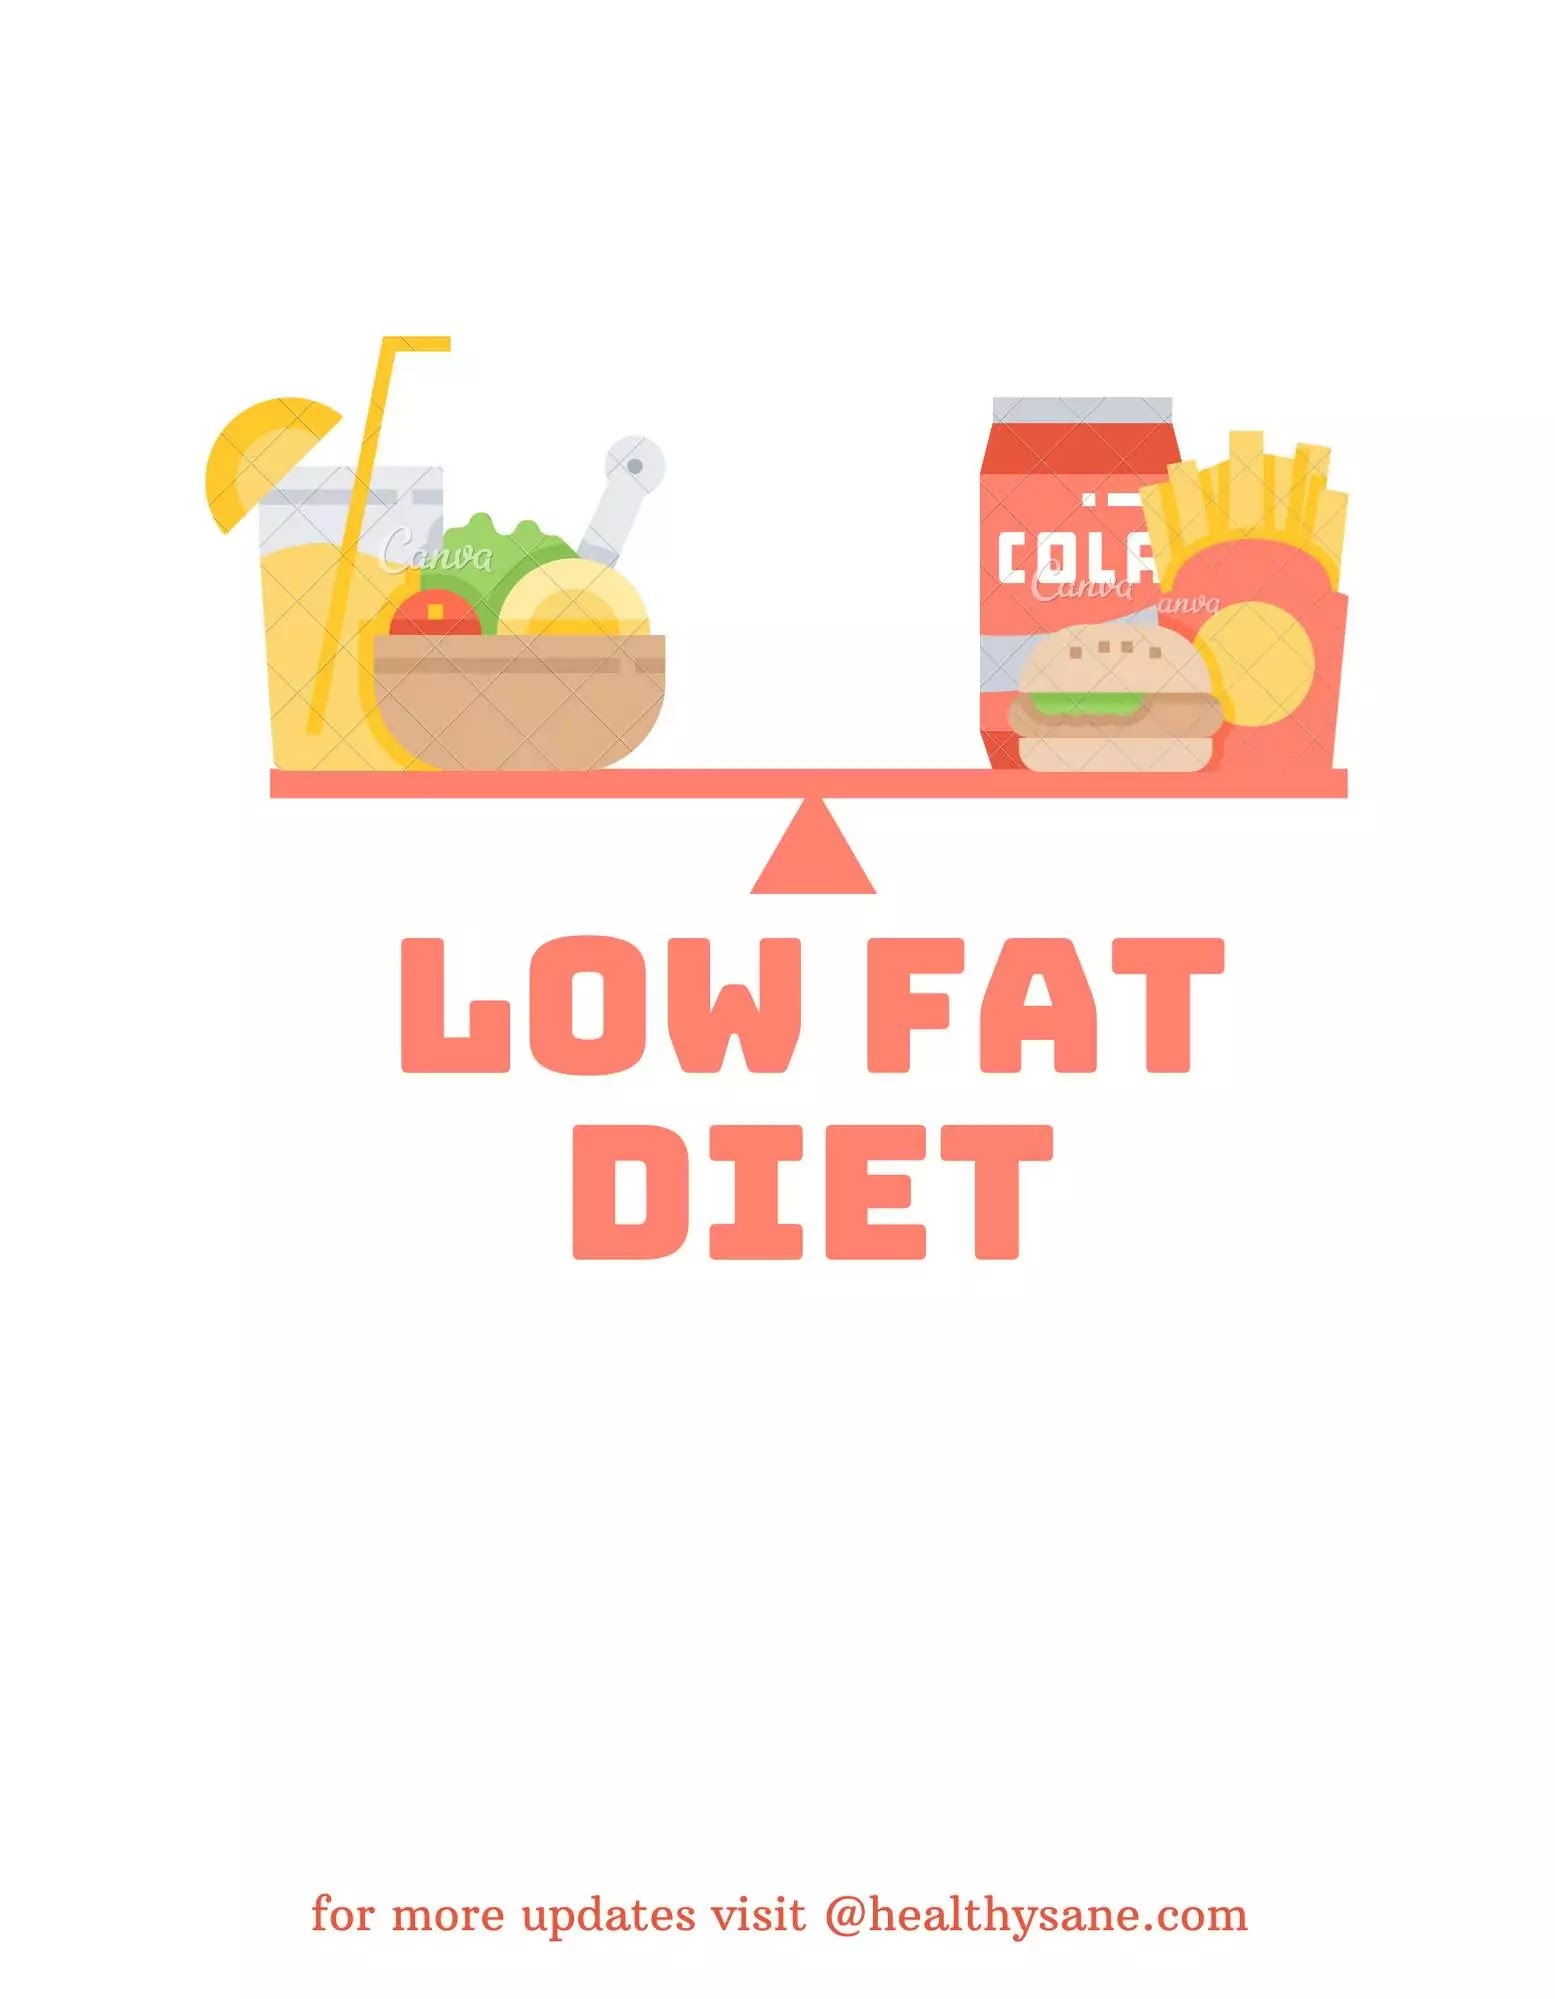 Low fat diet, diet, vegan diet, fitness